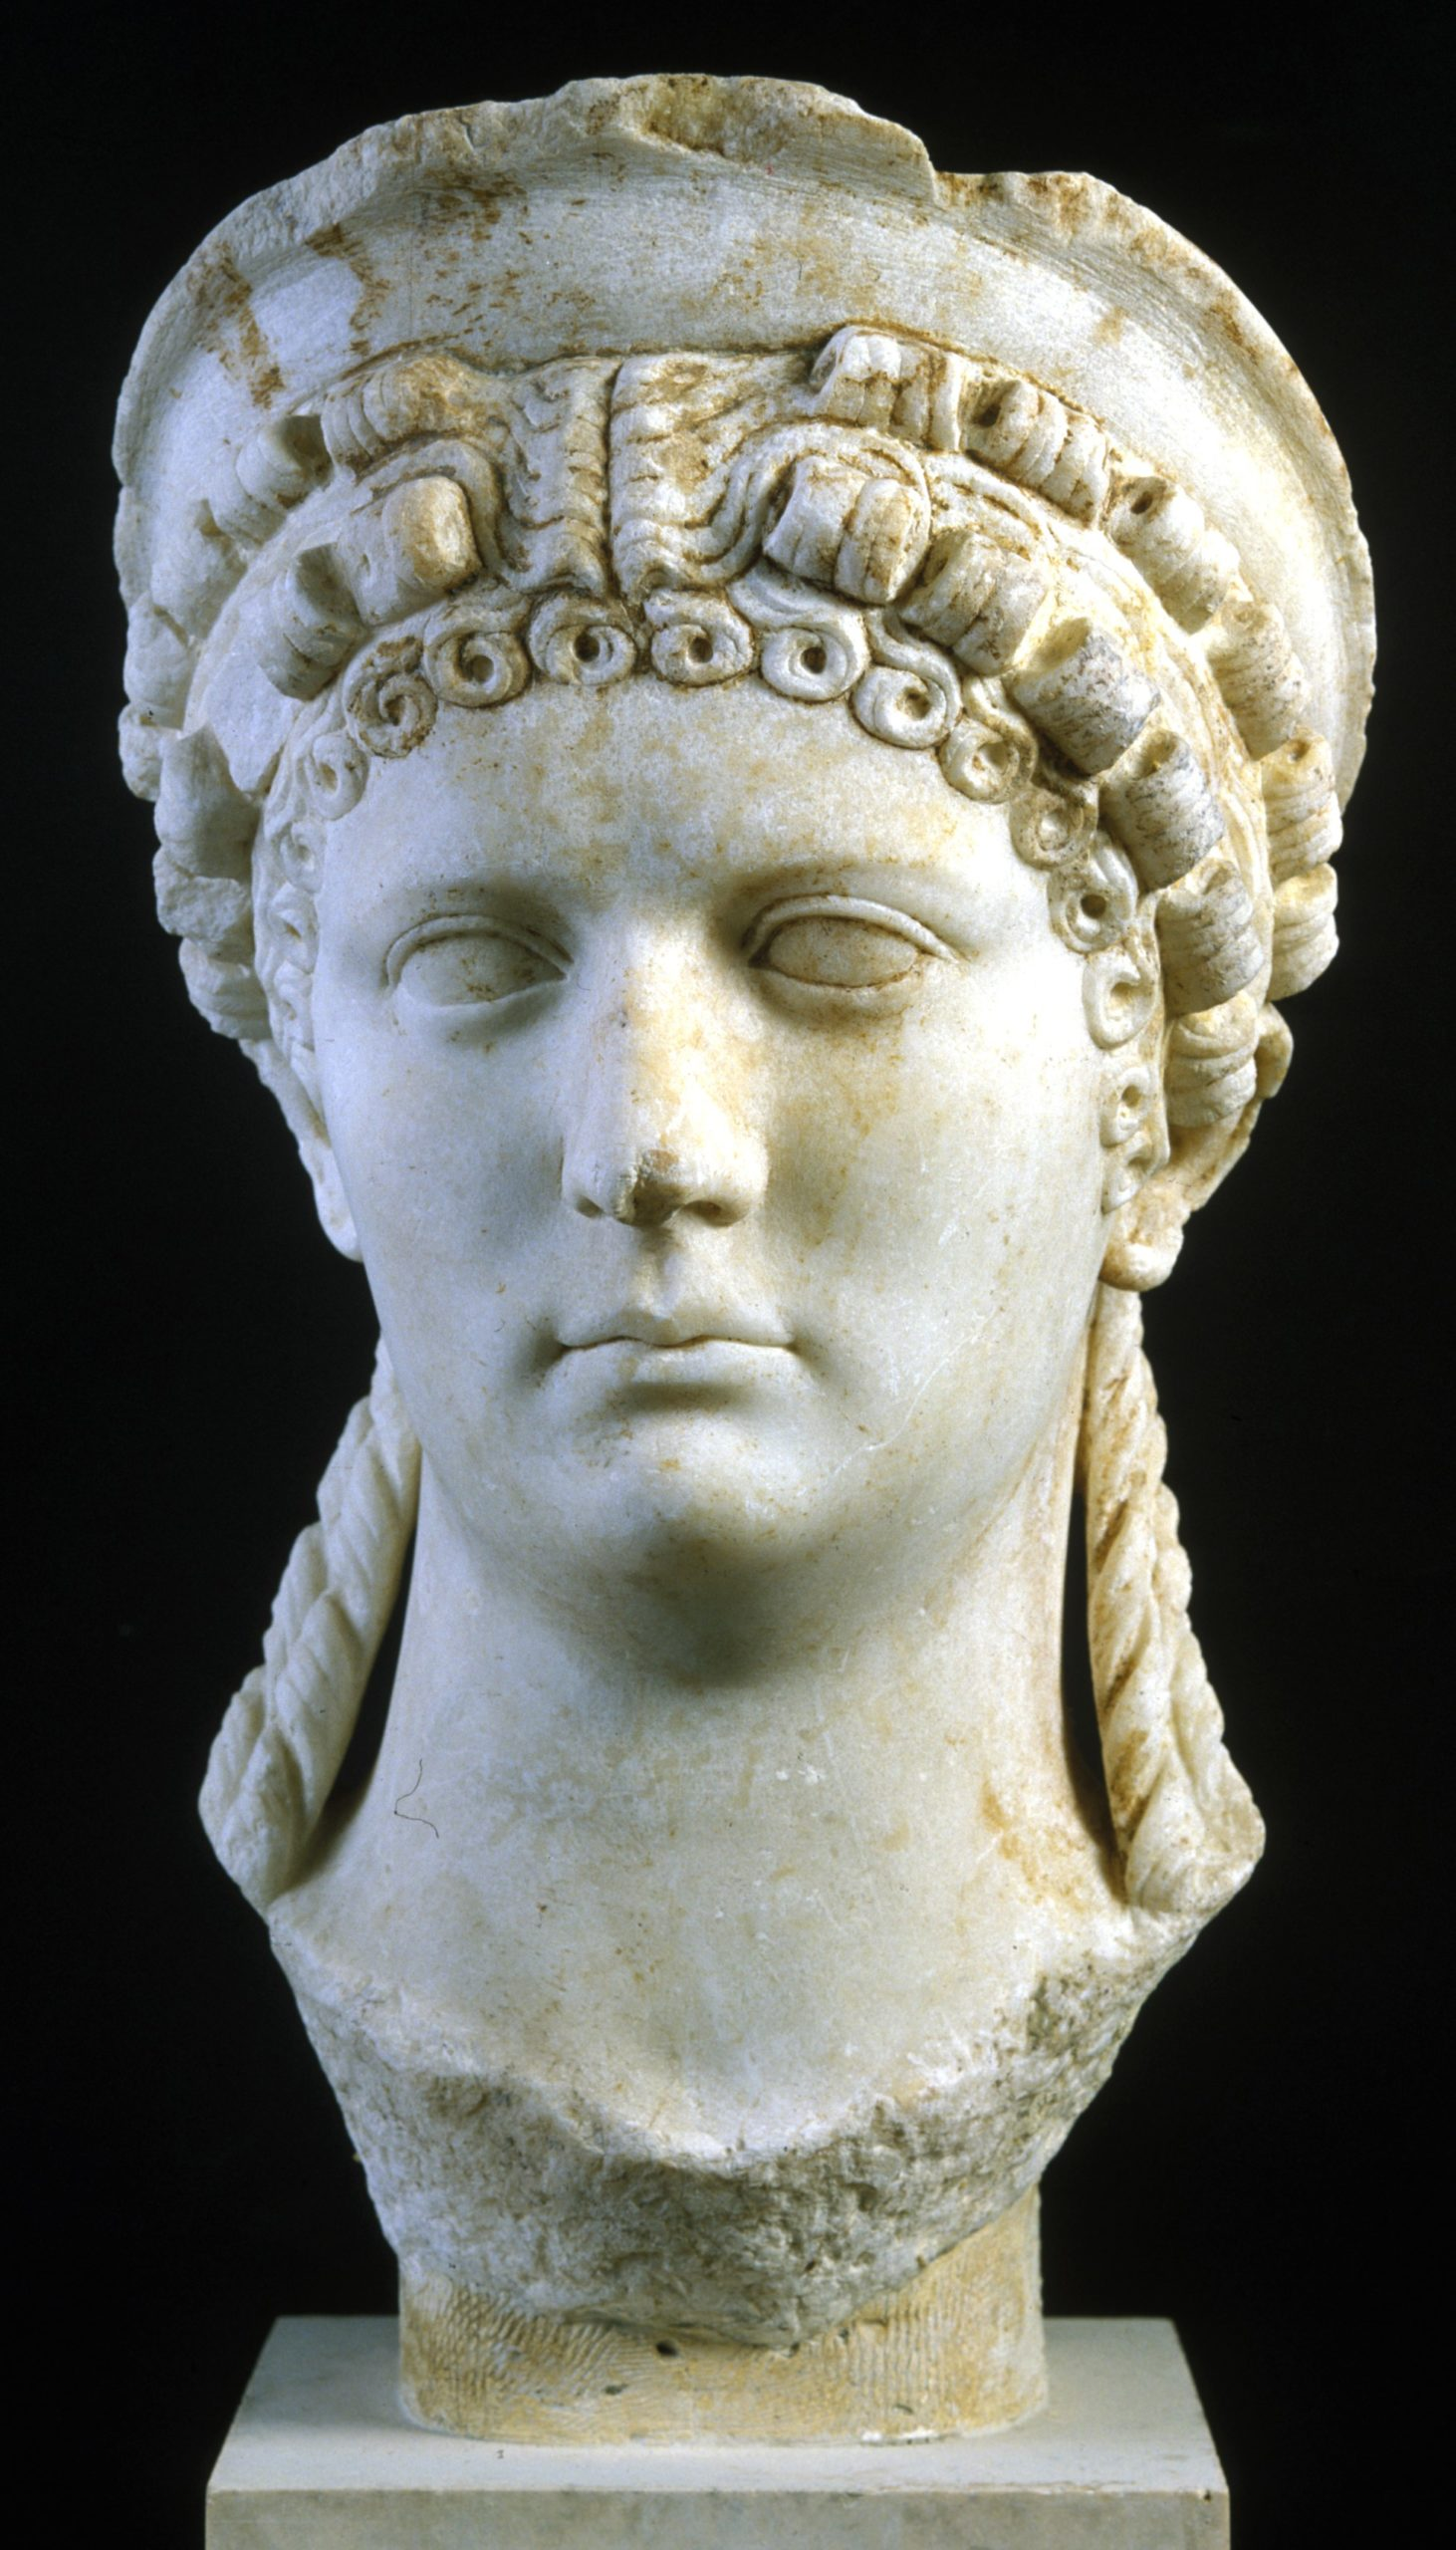 Bust of a woman in cream marble. She has an elaborate hairstyle, including curls on her forehead and ringlets falling from the back of her head to her shoulders.